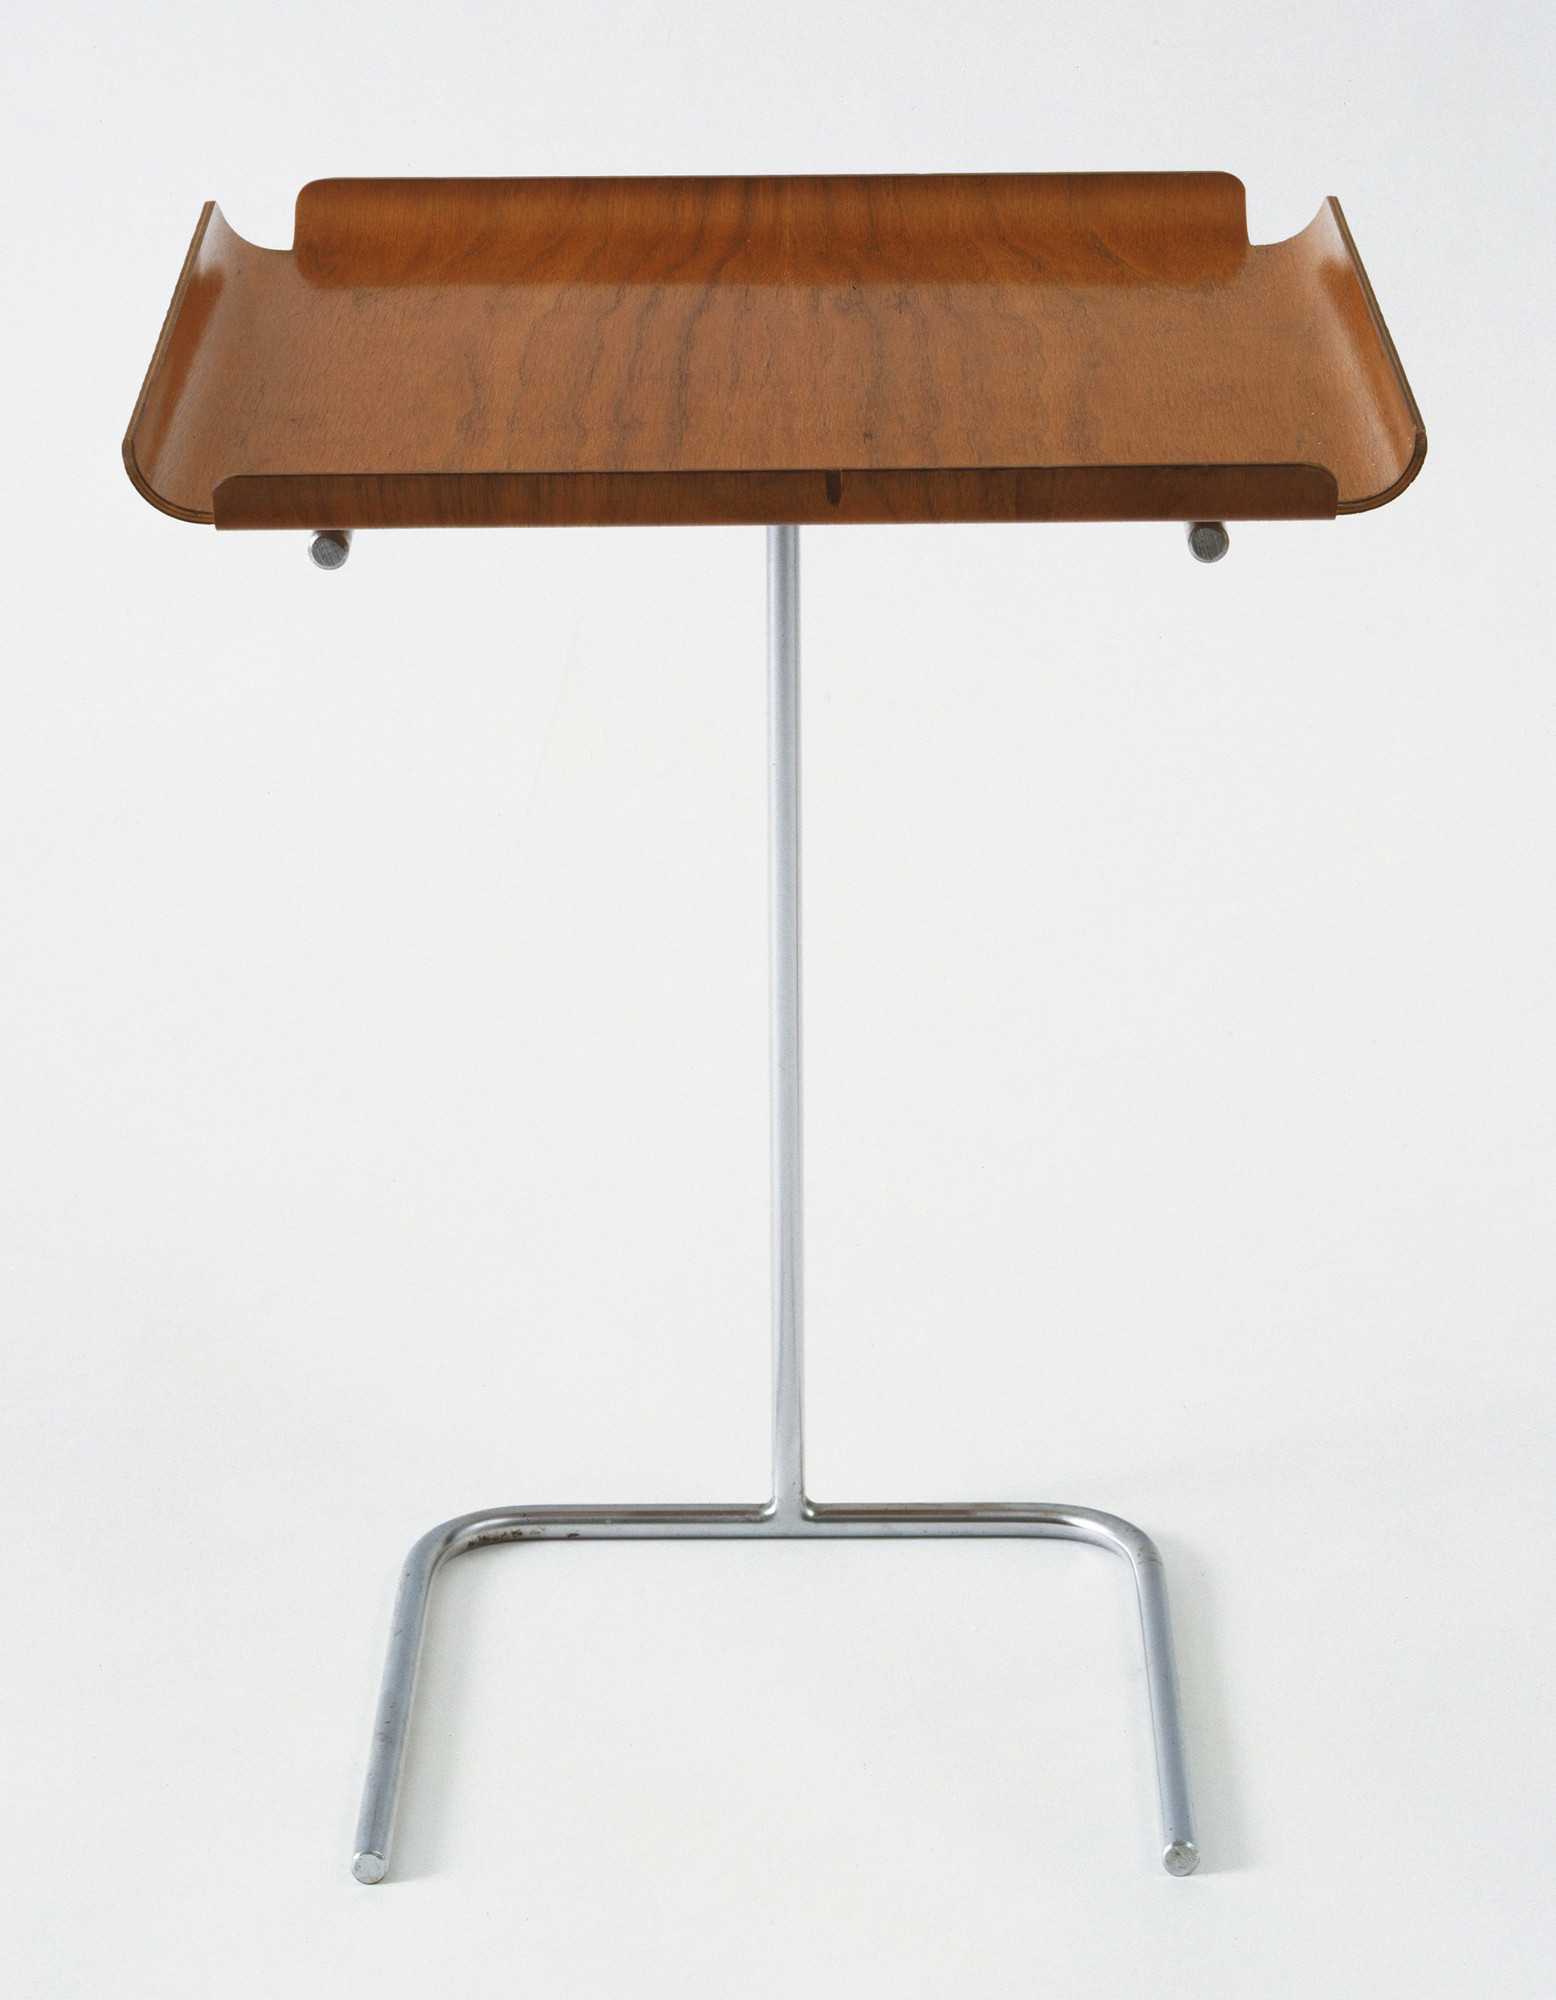 george nelson George Nelson Tray Table Model 4950 1948 MoMA